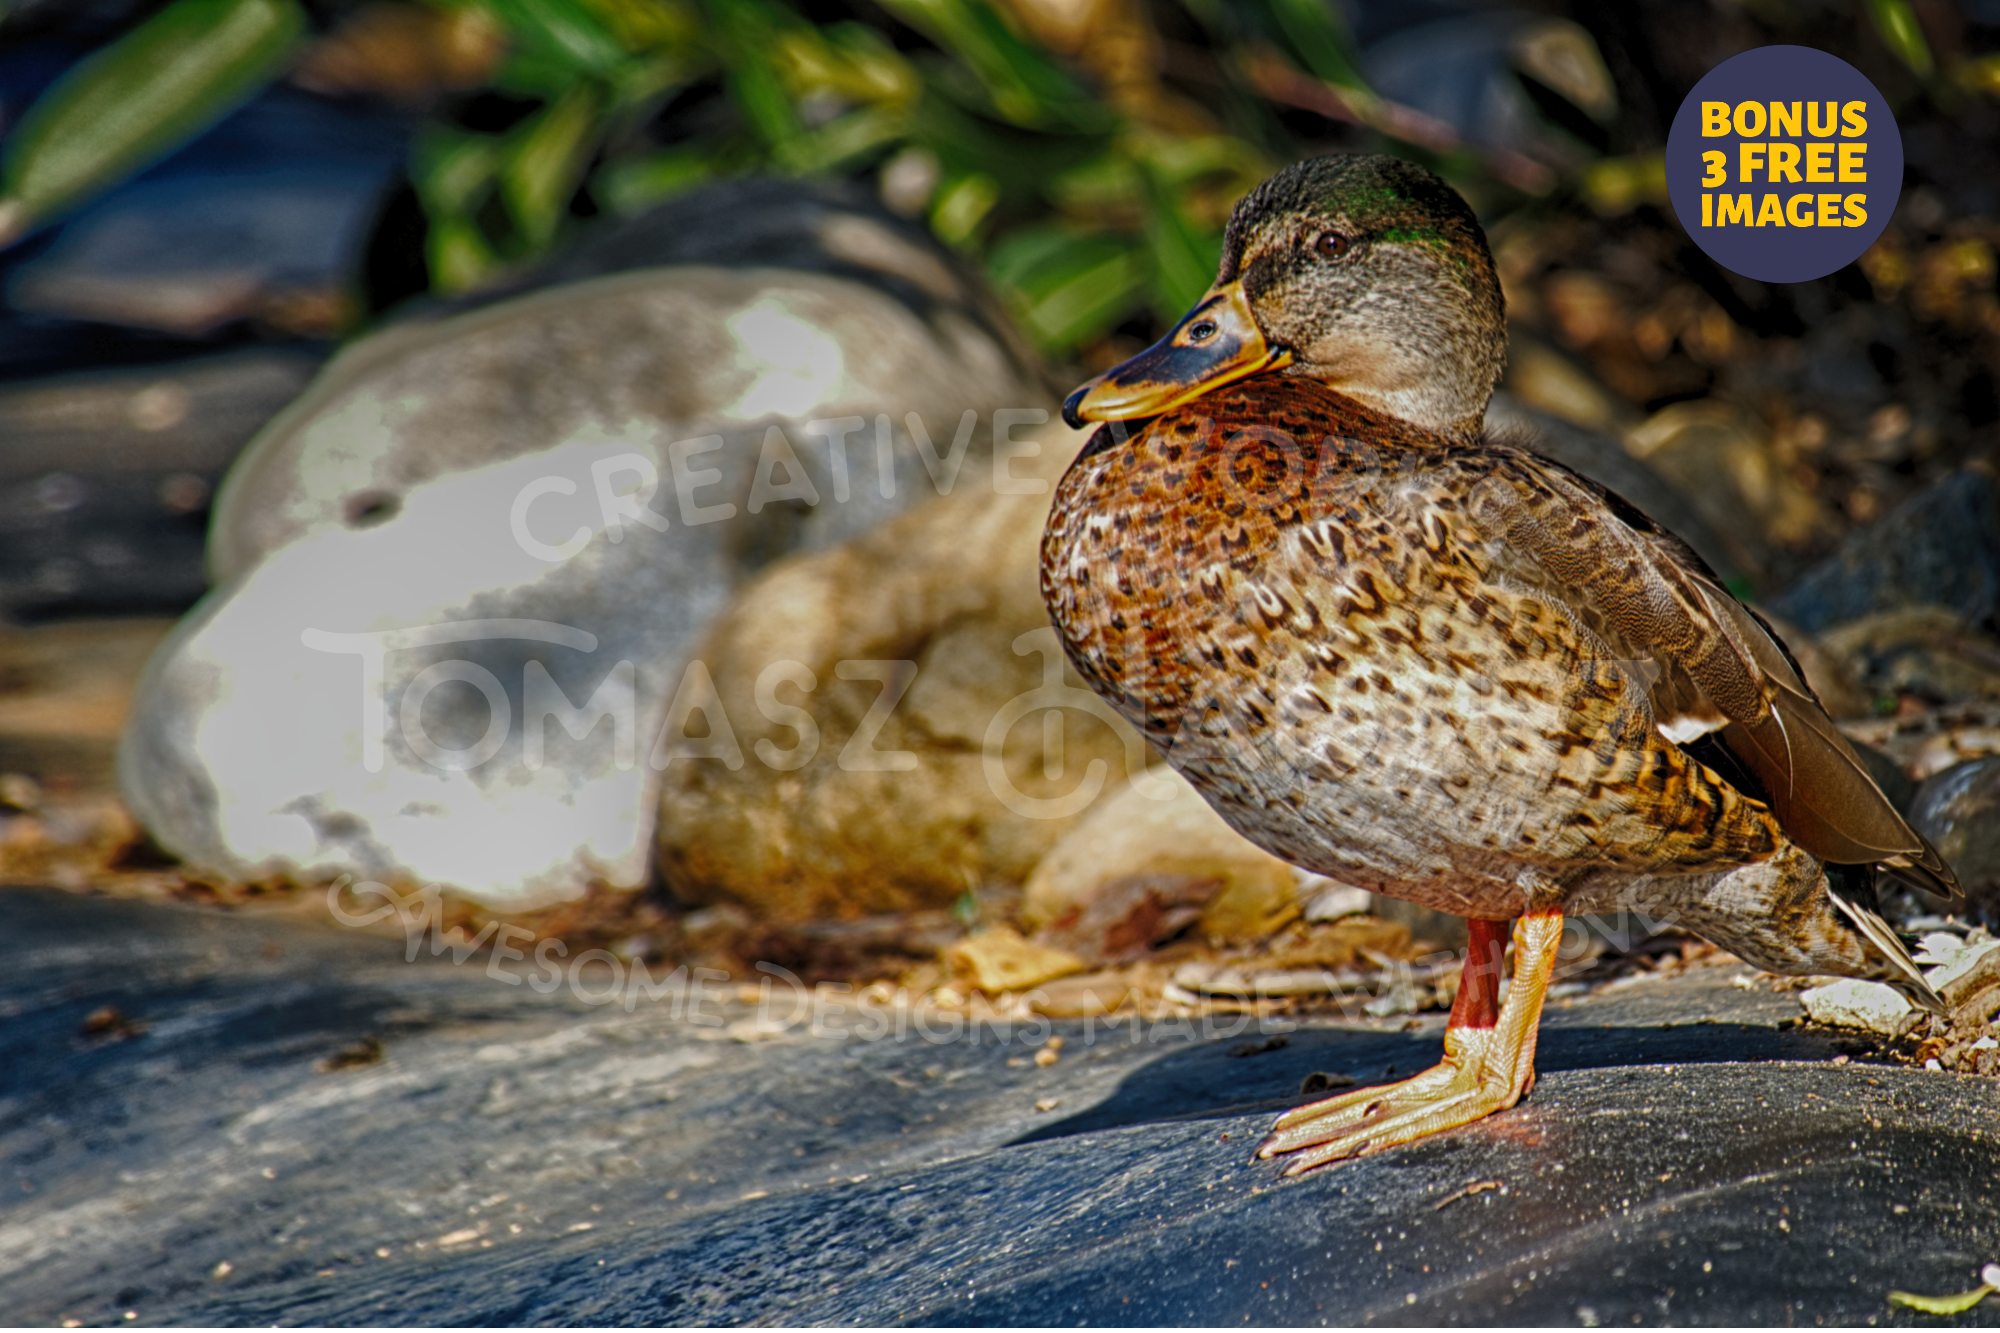 Duck In The Garden - Plus BONUS 3 FREE Images example image 1